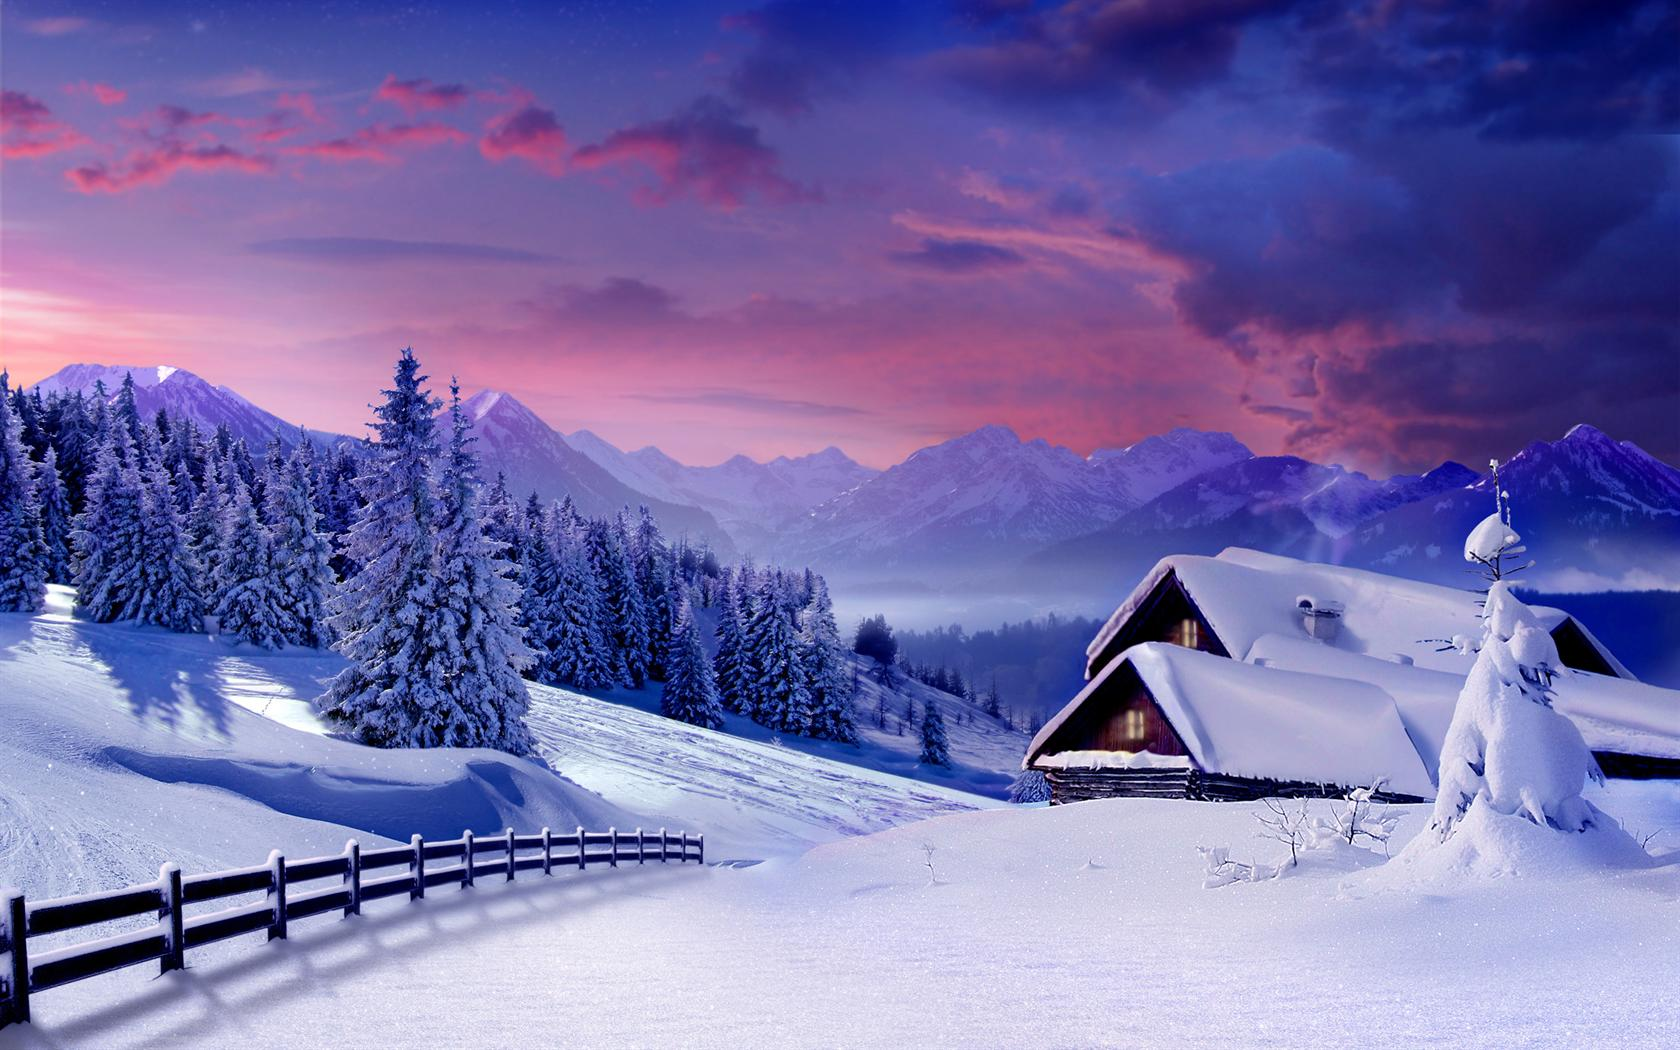 Winter Mountain Desktop Backgrounds 30 Wallpapers Adorable Wallpapers